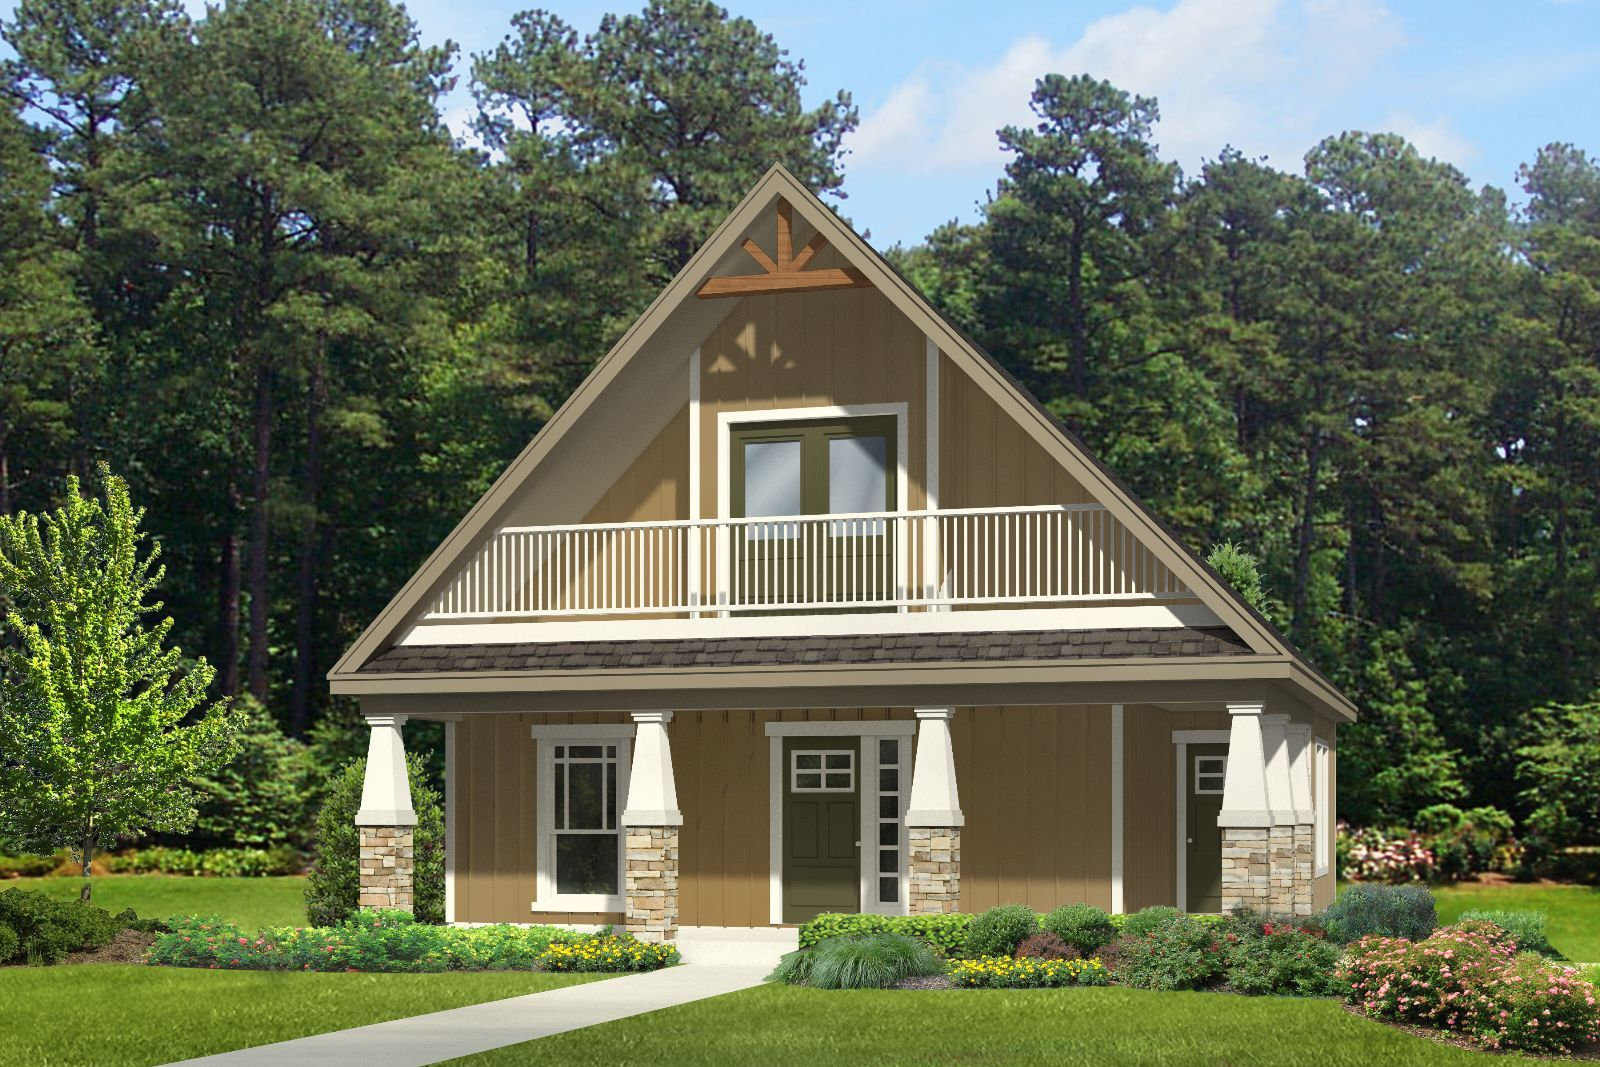 Craftsman house plans with porches on pinterest for House plans with porches